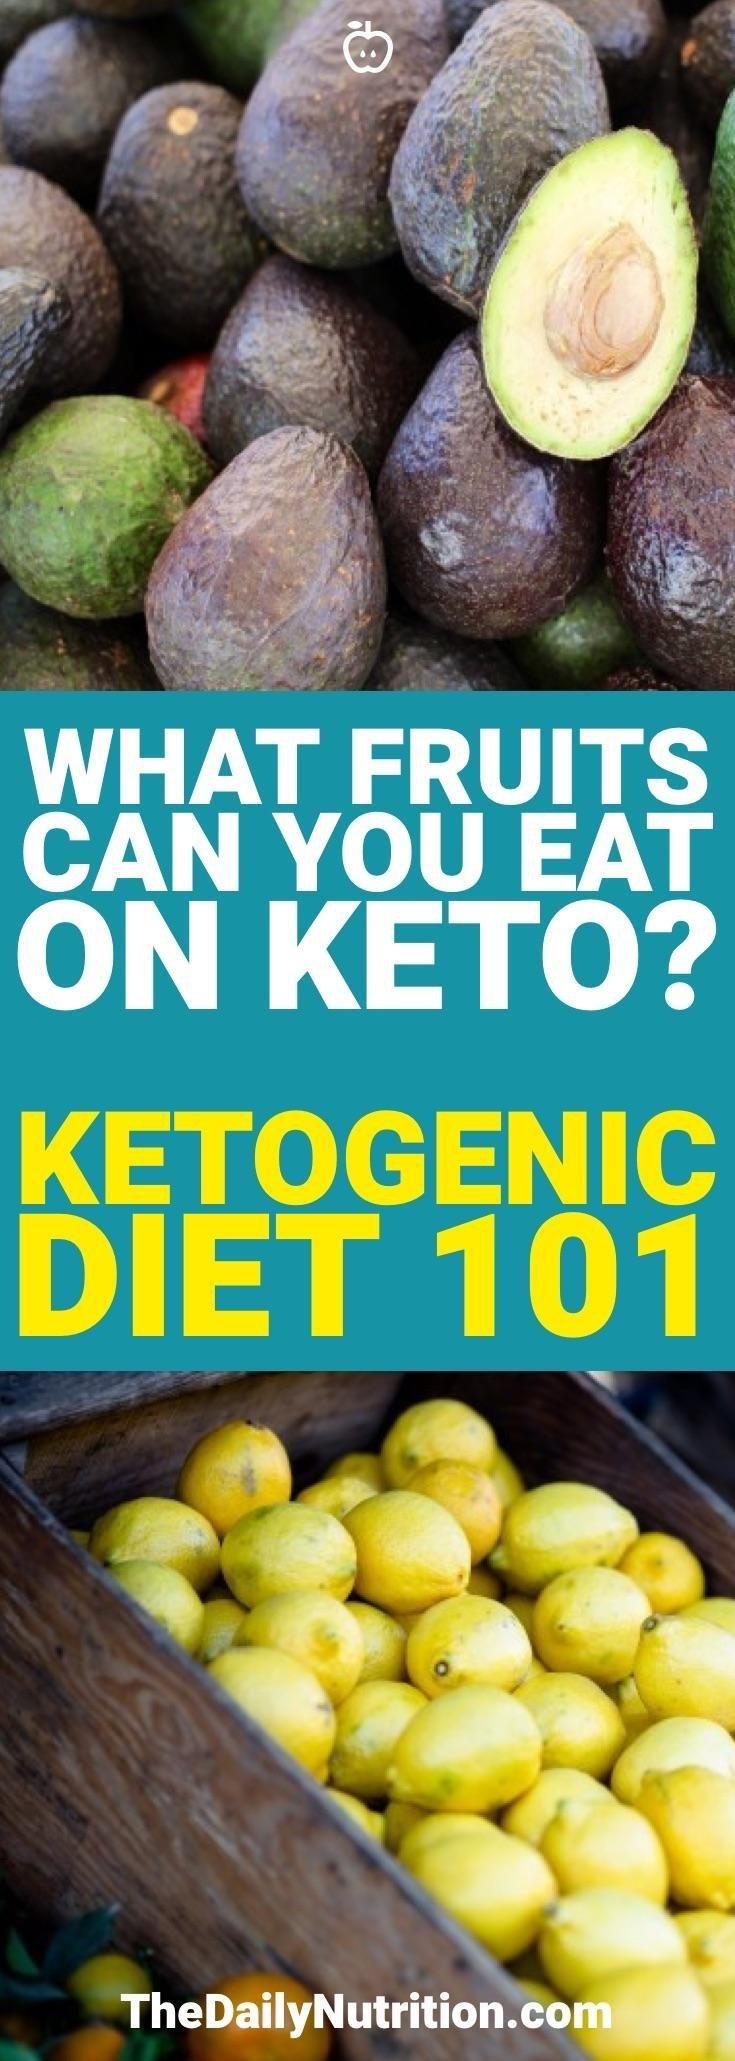 What Fruits Can You Eat On The Ketogenic Diet?